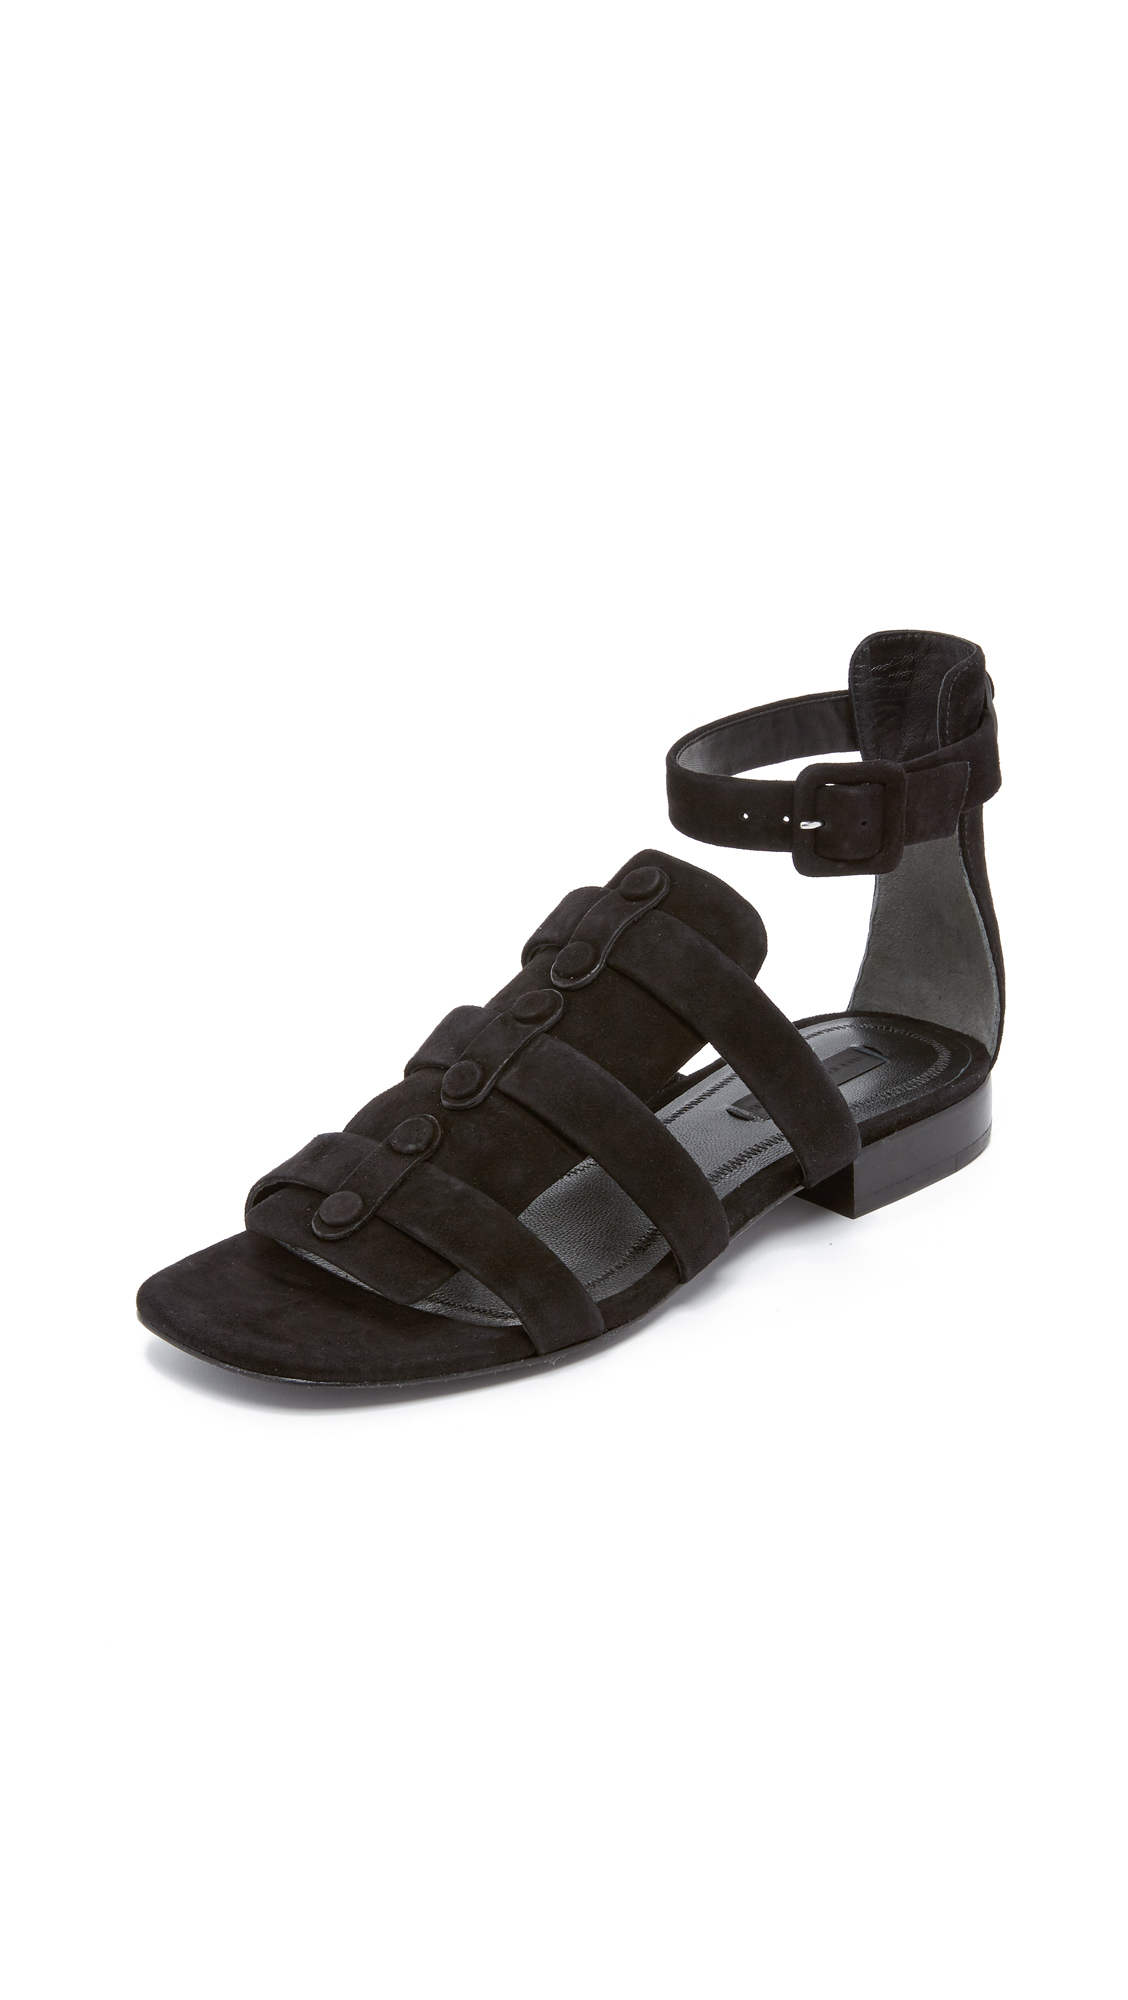 cc435ef9e12d Alexander Wang Mallory Gladiator Sandals in Black - Lyst